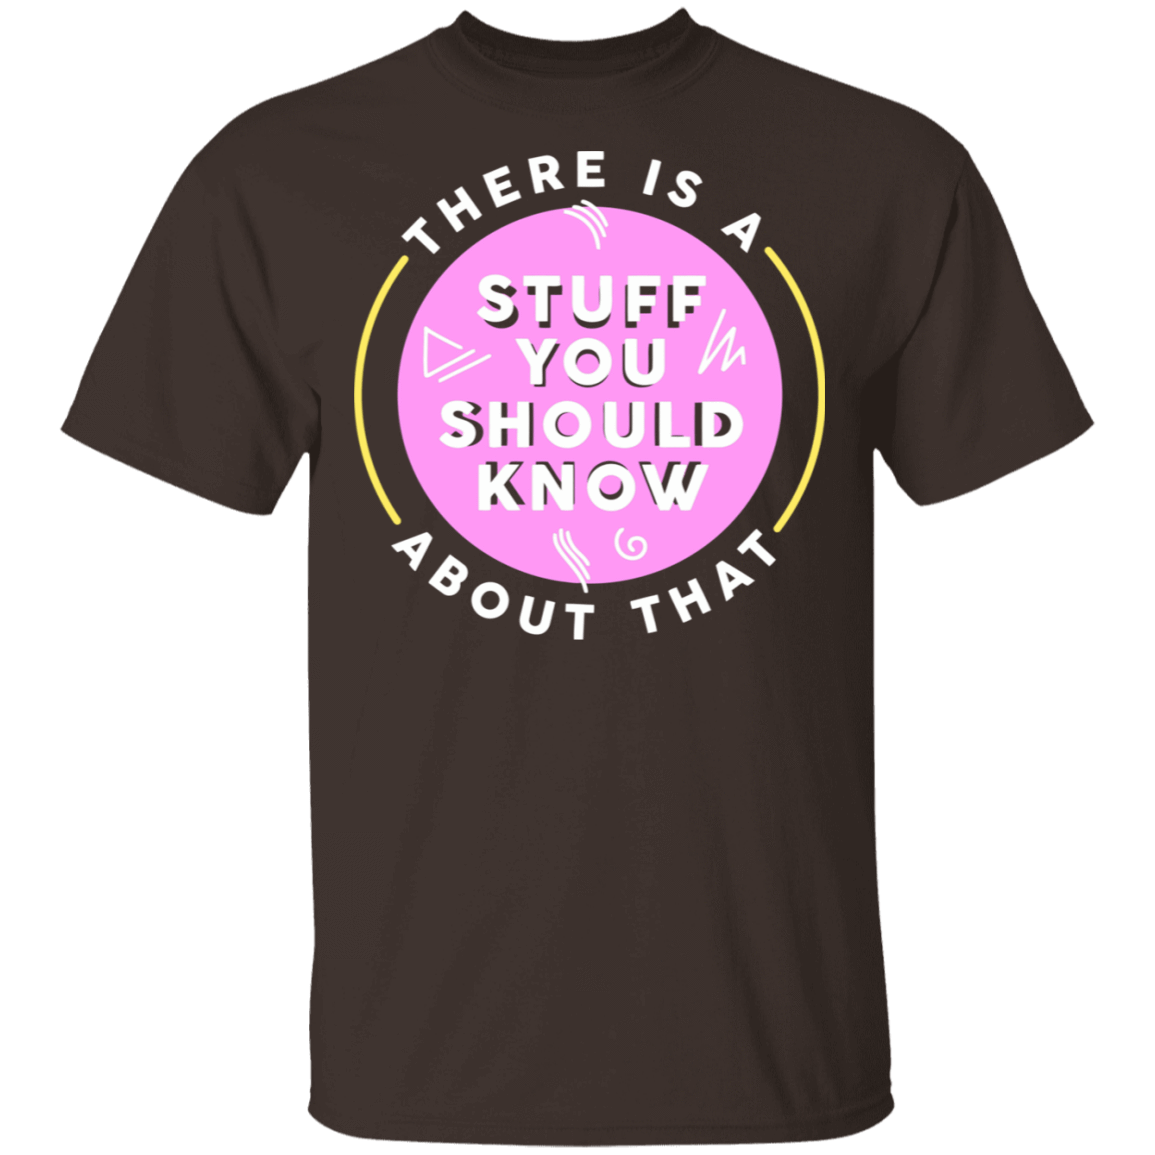 There Is A Stuff You Should Know About That T-Shirts, Hoodies, Tank 22-2283-79271371-12087 - Tee Ript